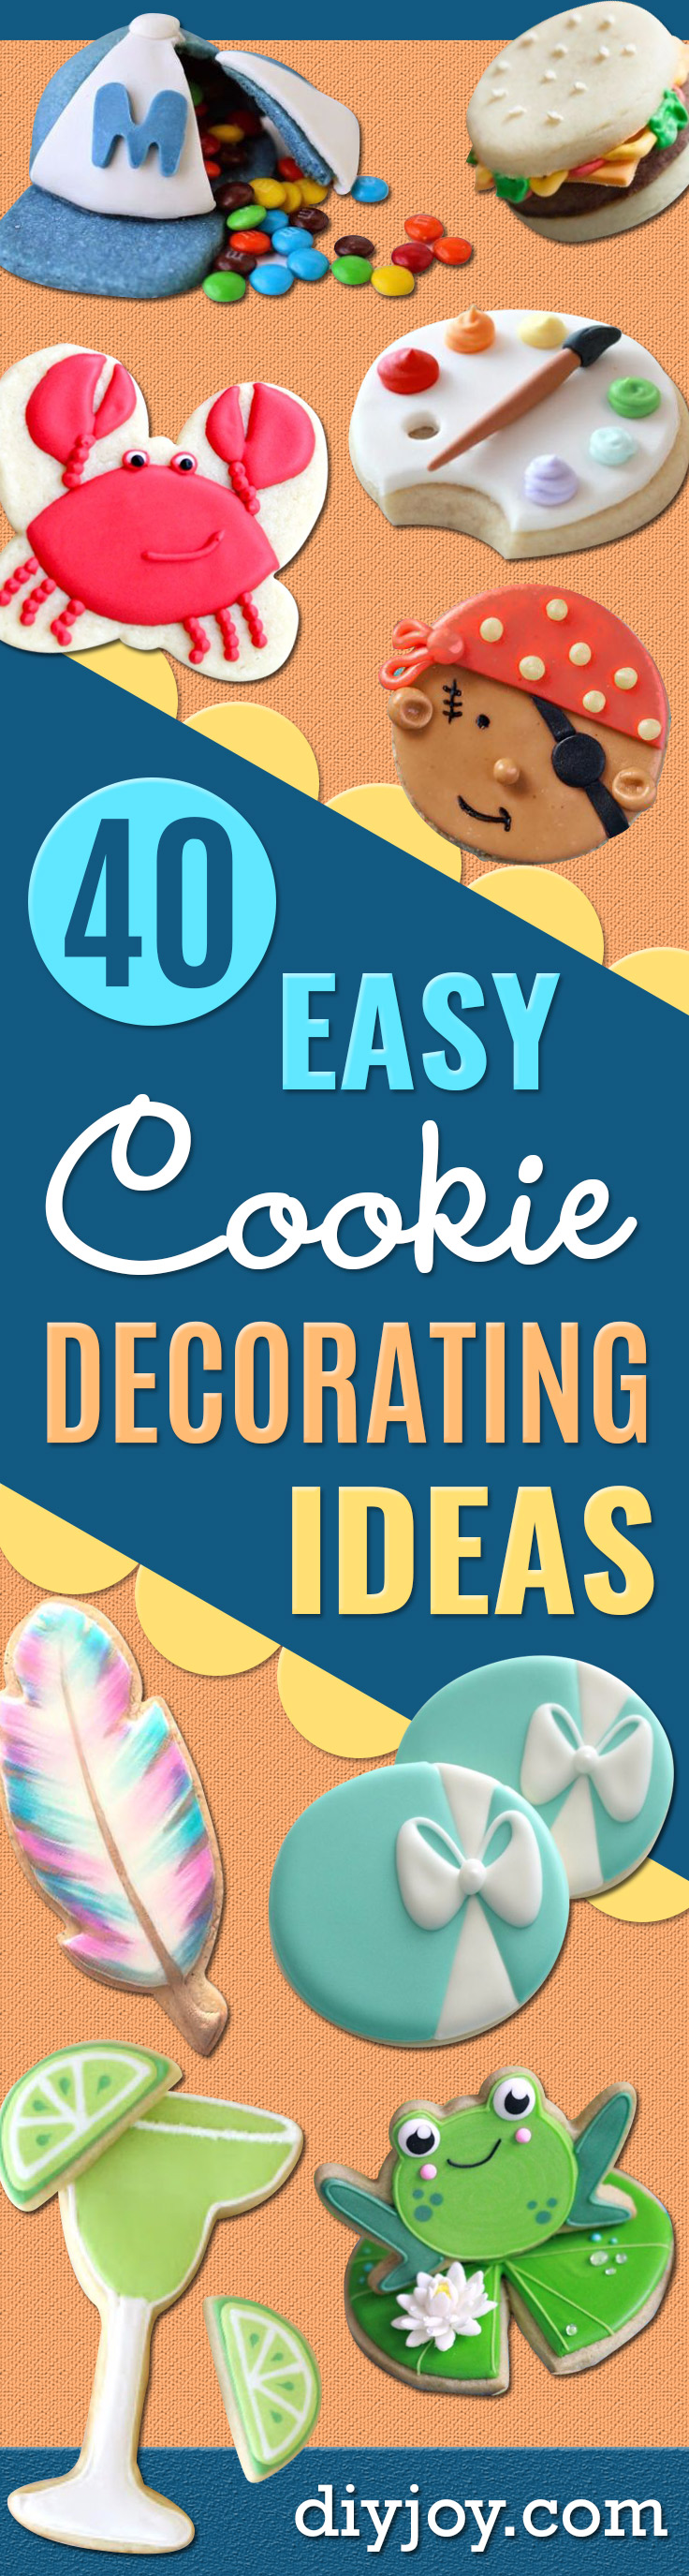 Cool Cookie Decorating Ideas - Easy Ways To Decorate Cute, Adorable Cookies - Quick Recipes and Simple Decorating Tips With Icing, Candy, Chocolate, Buttercream Frosting and Fruit - Best Party Trays and Cookie Arrangements http://diyjoy.com/cookie-decorating-ideas